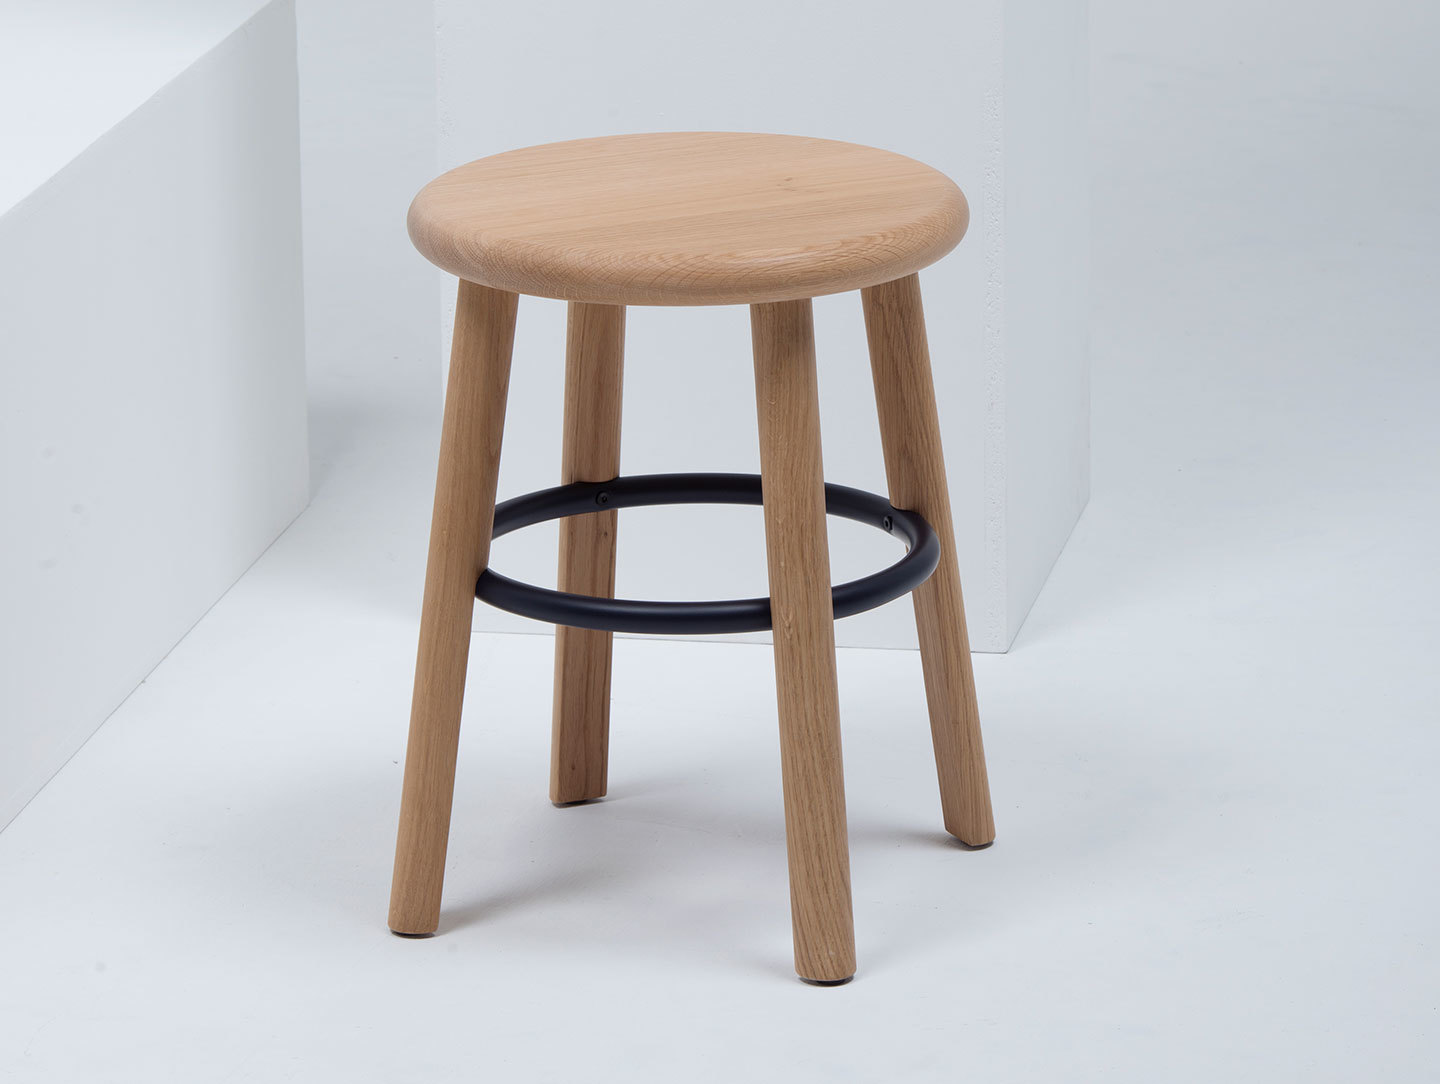 Mattiazzi Solo Stool Low Oak Detail Studio Nitzan Cohen